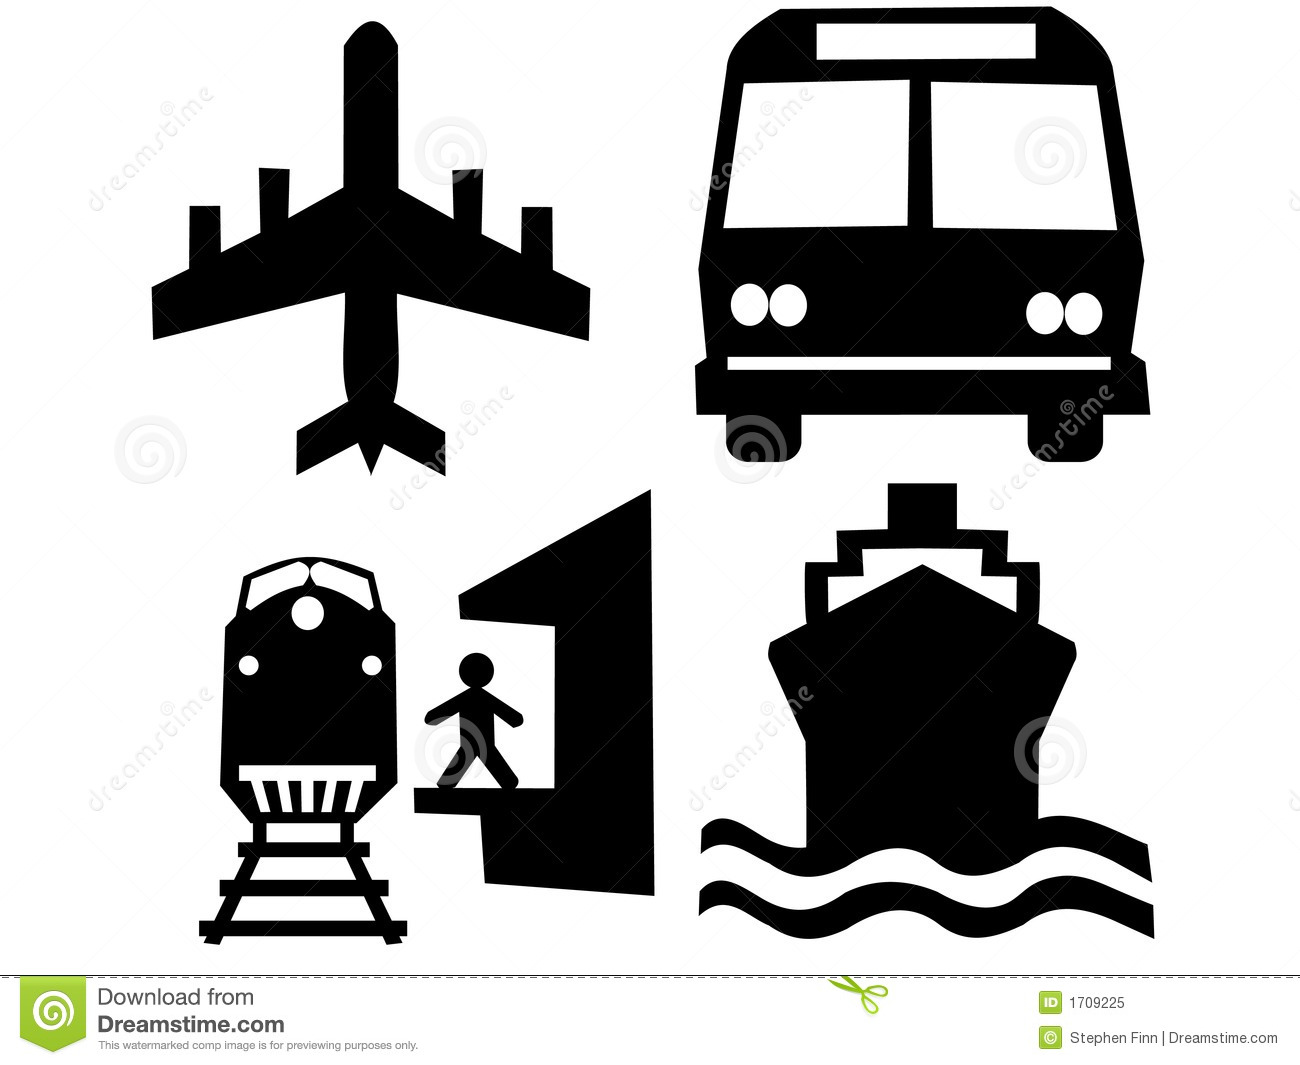 Heman And Battlecat 126002186 furthermore Templates furthermore Indian Solar Bus Stop 139276772 furthermore Royalty Free Stock Photo Transportation Silhouettes Image1709225 likewise Stock Illustration Bus Symbol Vector Illustration. on bus illustration